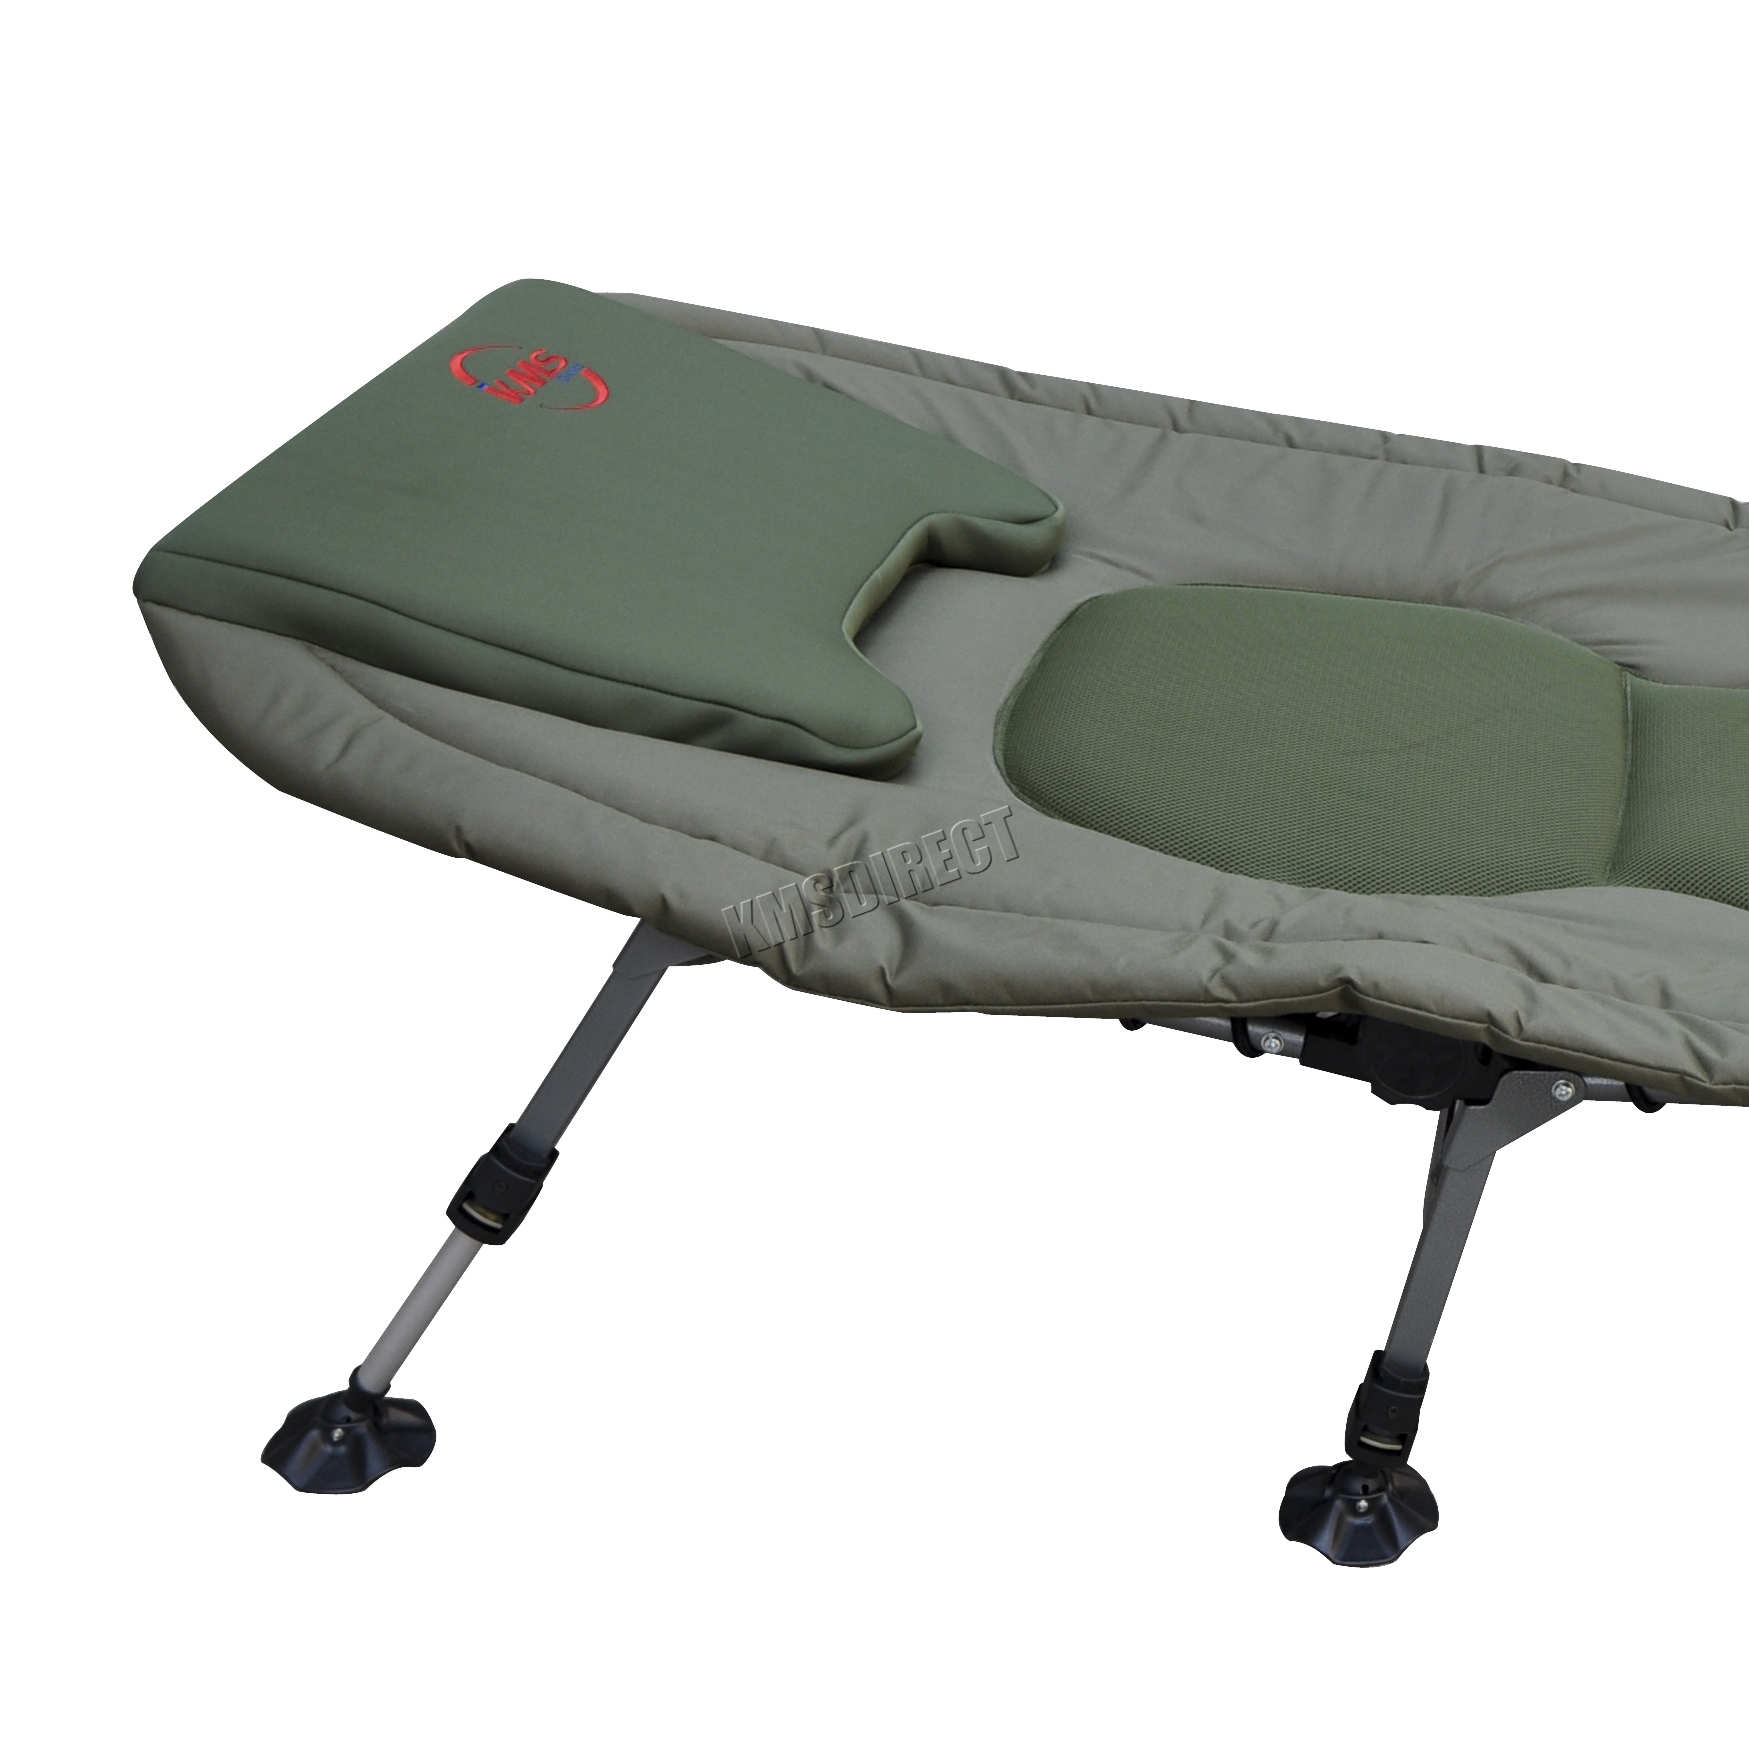 Portable Carp Fishing Bed Chair Bedchair Camping 6 Adjustable Legs